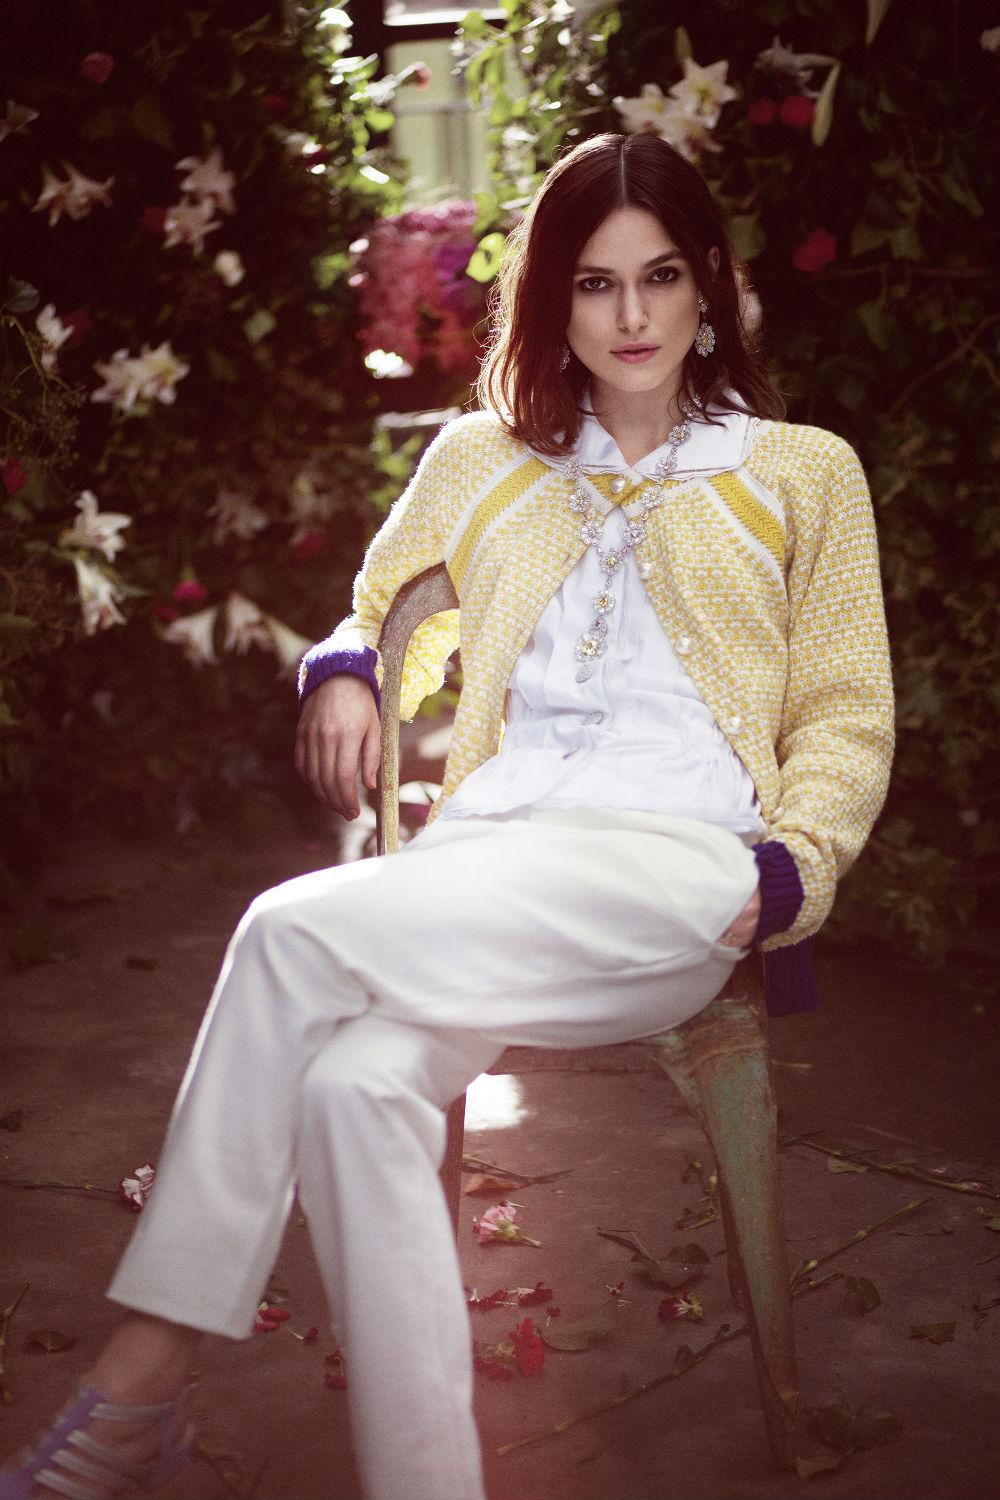 keira-knightley-by-emily-hope-for-rika-spring-L-aoSxZP.jpeg